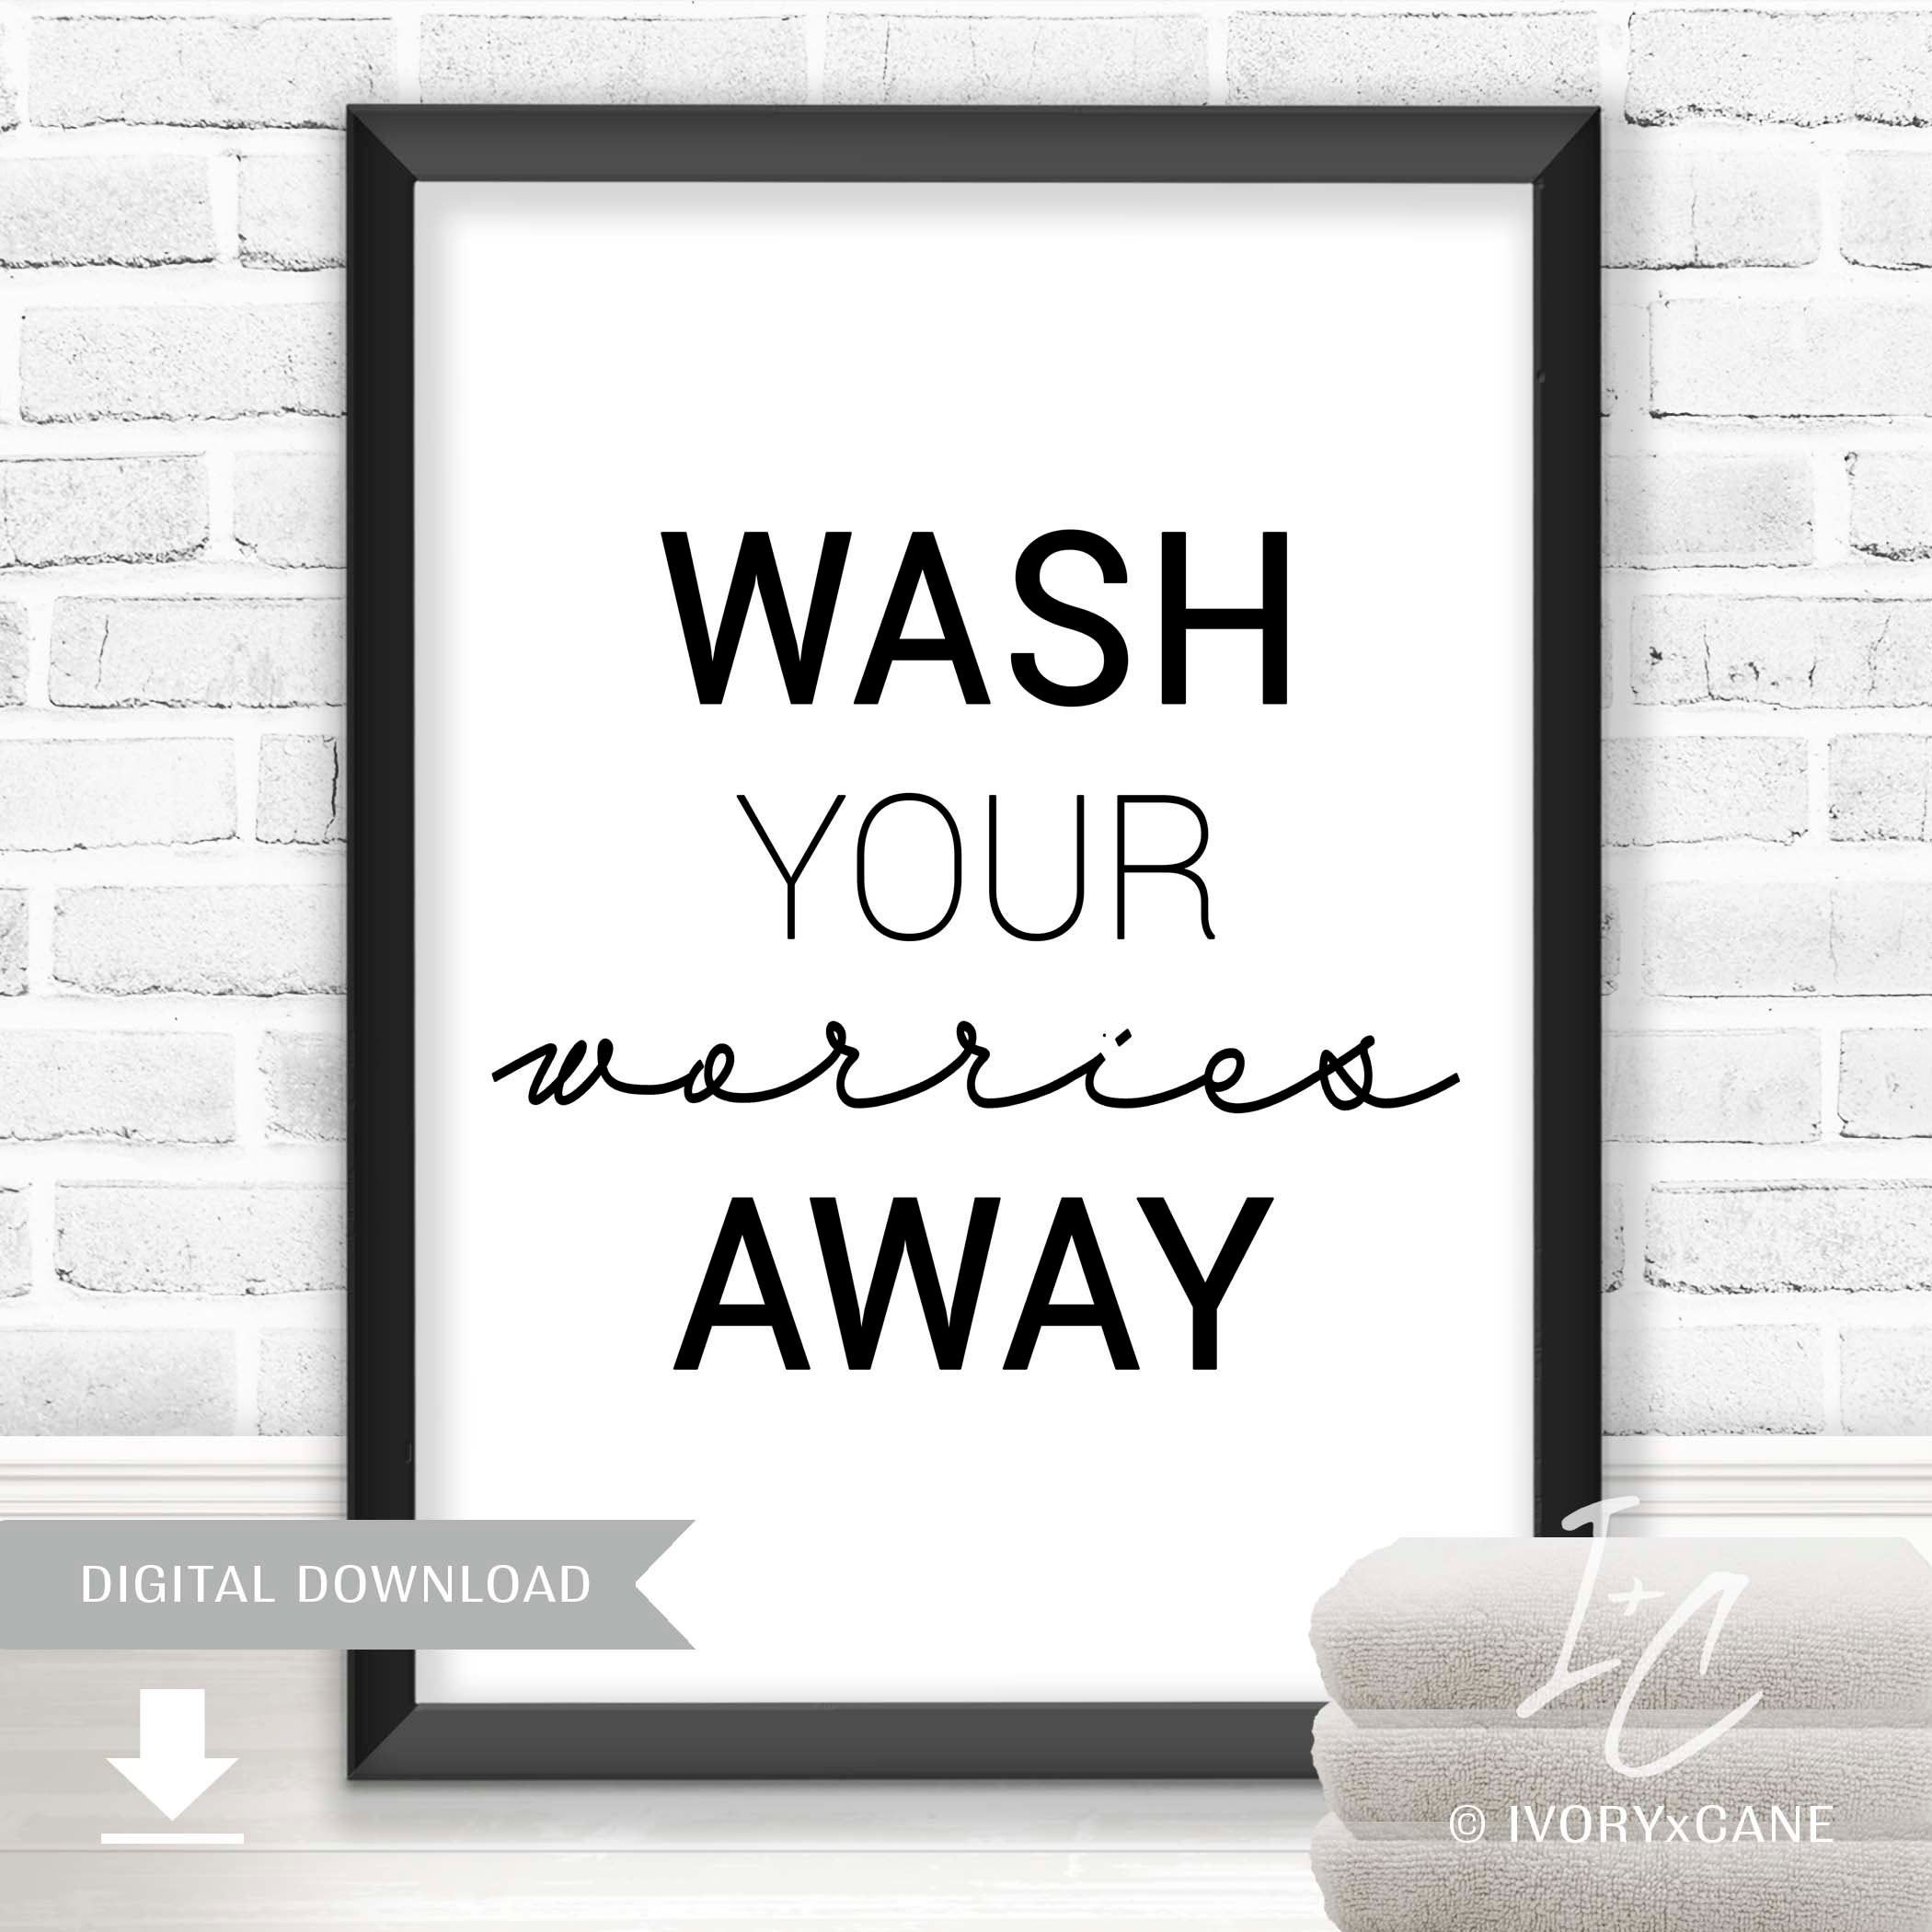 Printable Wall Art, Printable Laundry Art, Wash Your Worries Away, Laundry Sign, Laundry Decor, Bathroom Sign, DIY Decor, Laundry Wall Art #laundrysigns